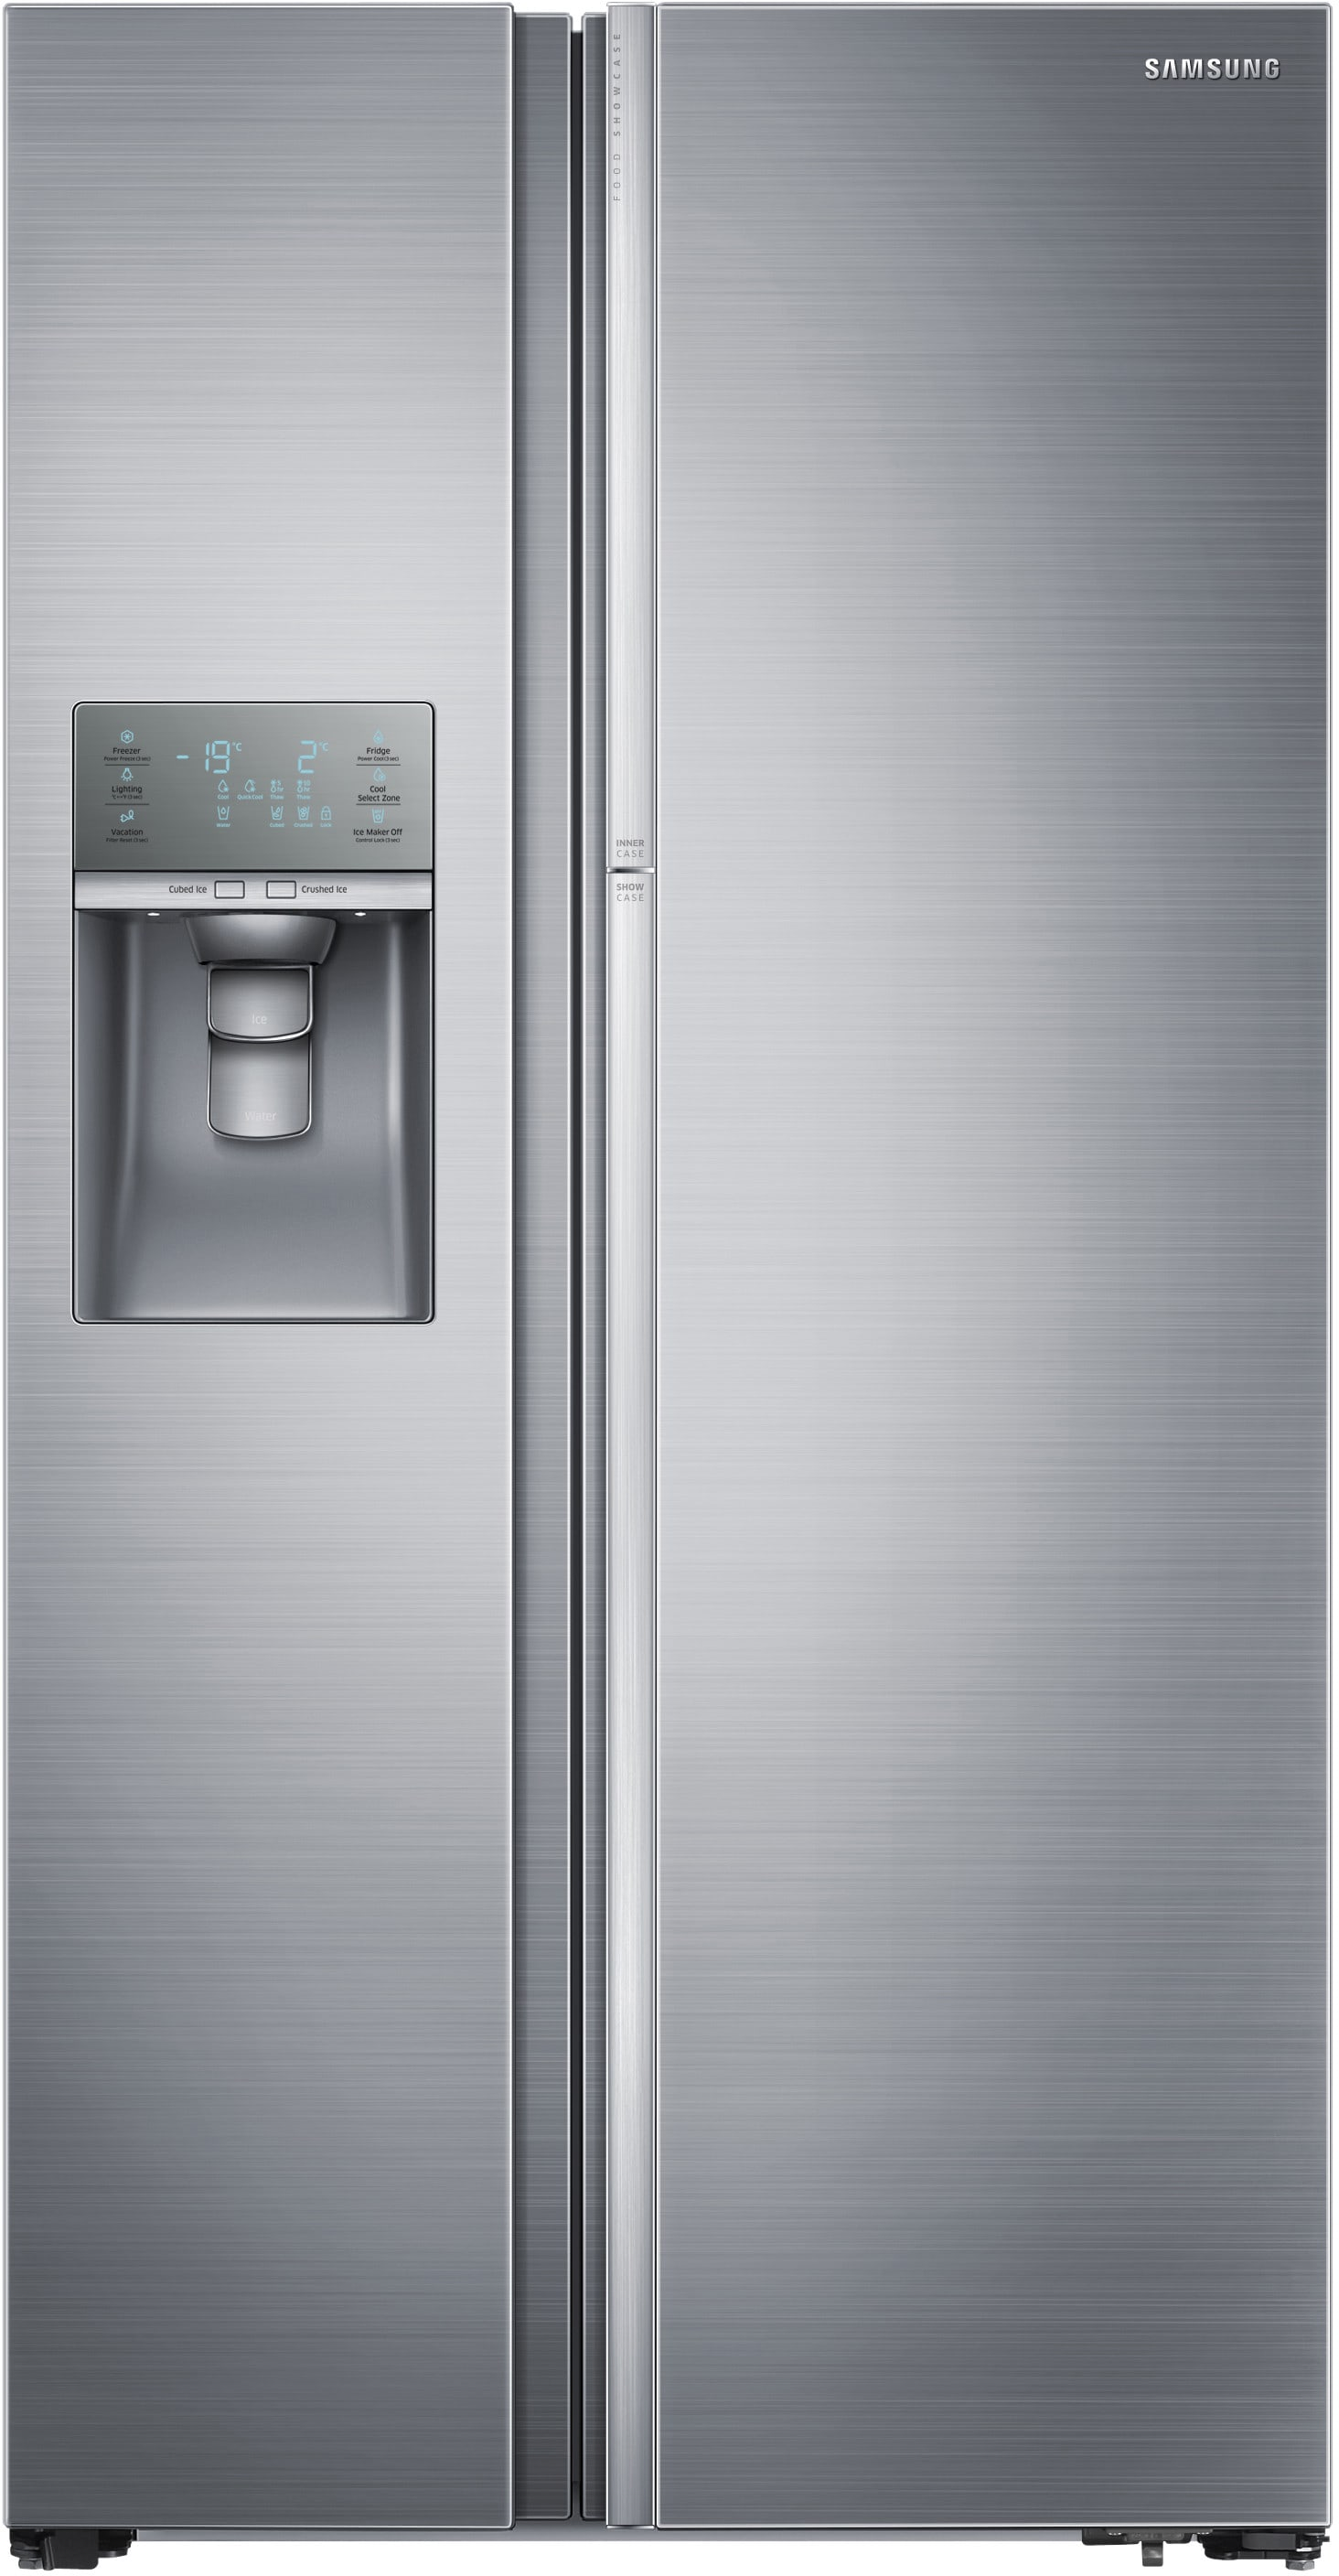 Samsung Rh29h9000sr 36 Inch Side By Side Refrigerator With